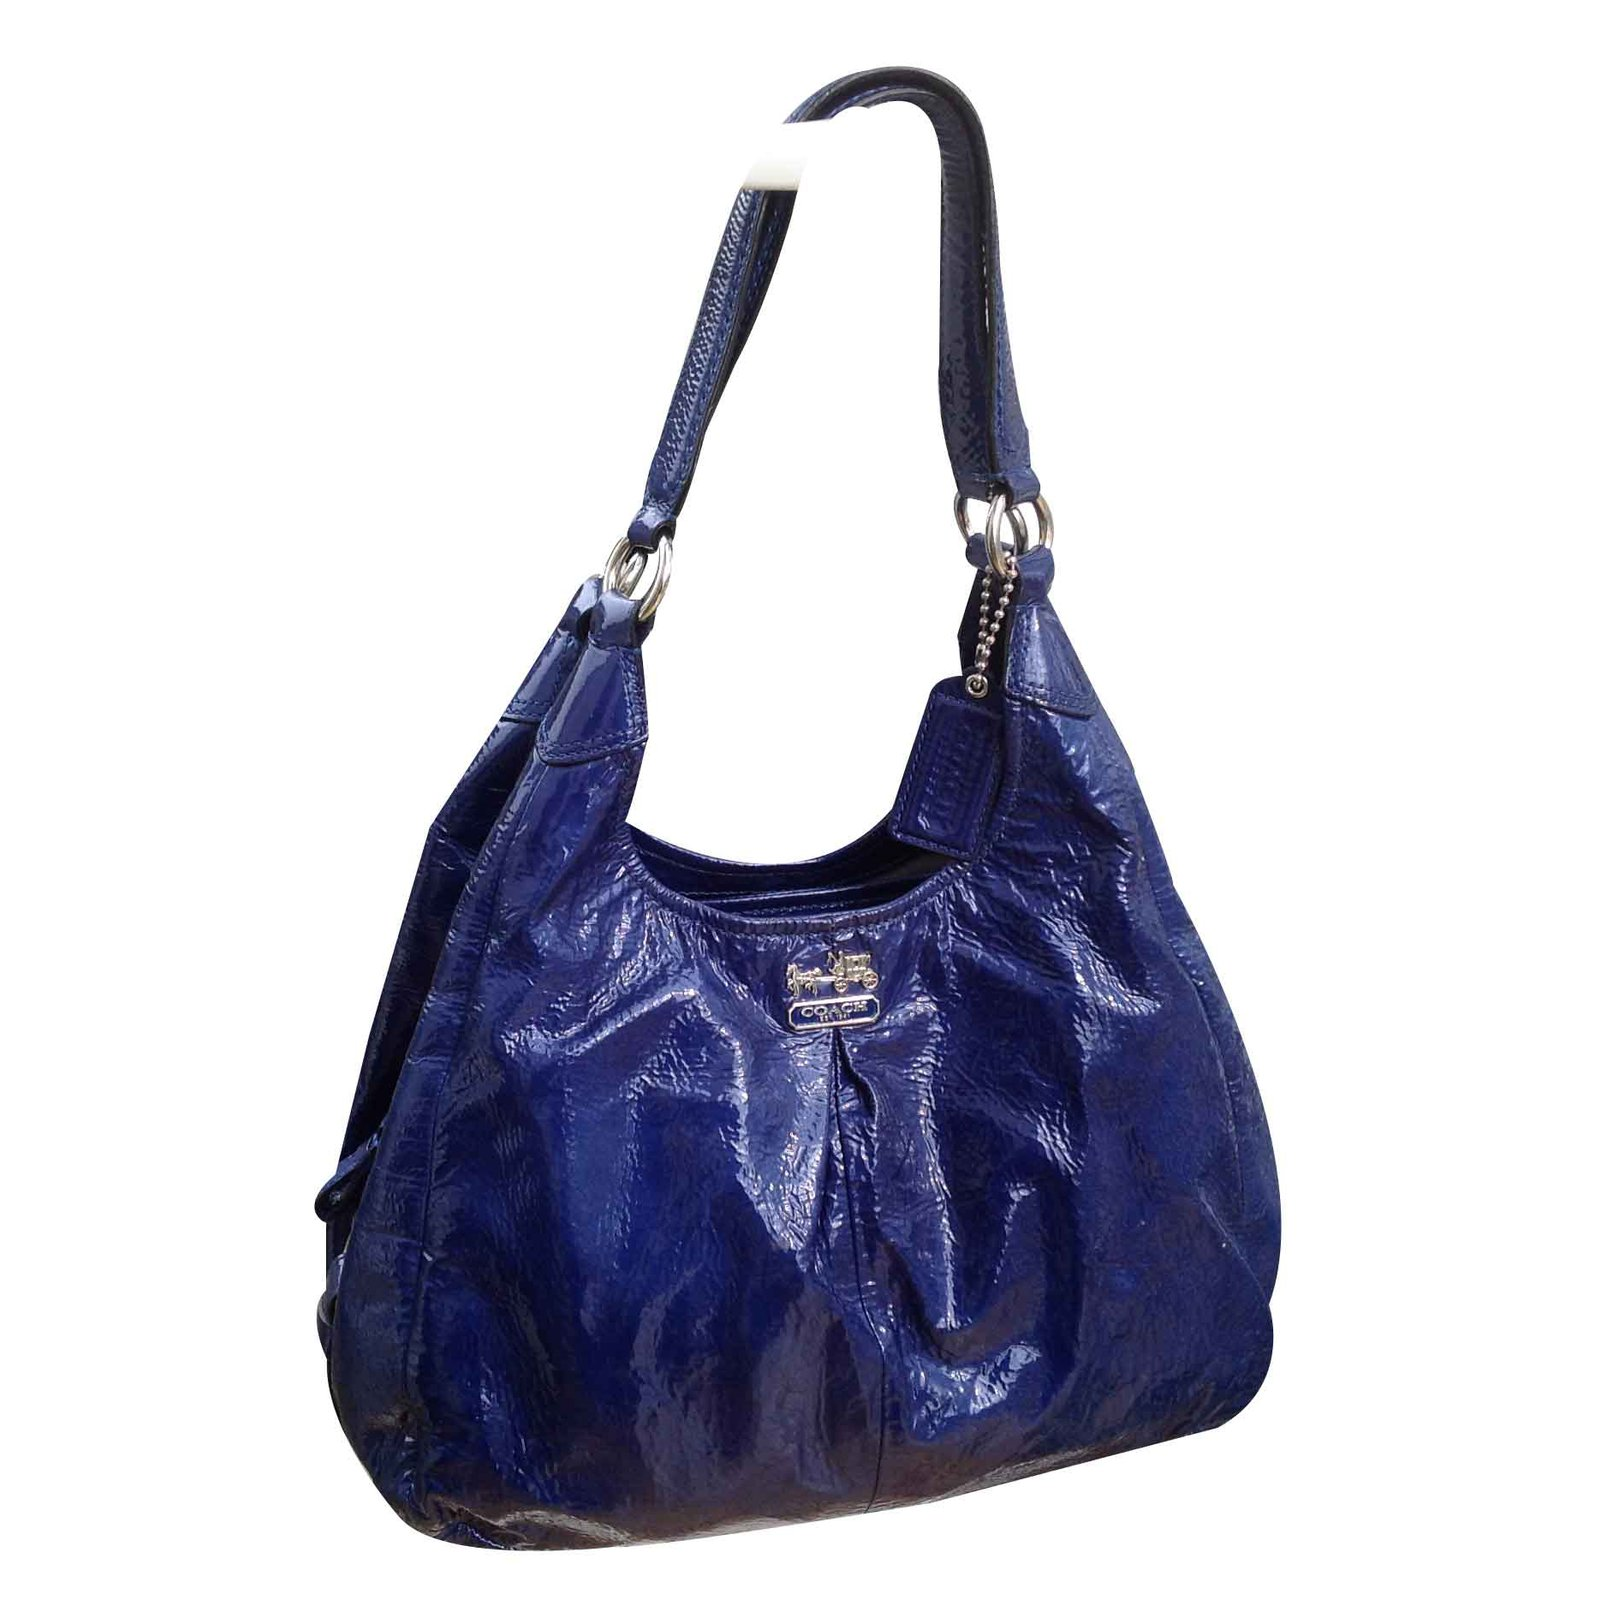 02b2096819e7 ... get coach madison patent maggie shoulder bag handbags patent leather  blue ref.20743 3aa48 7f266